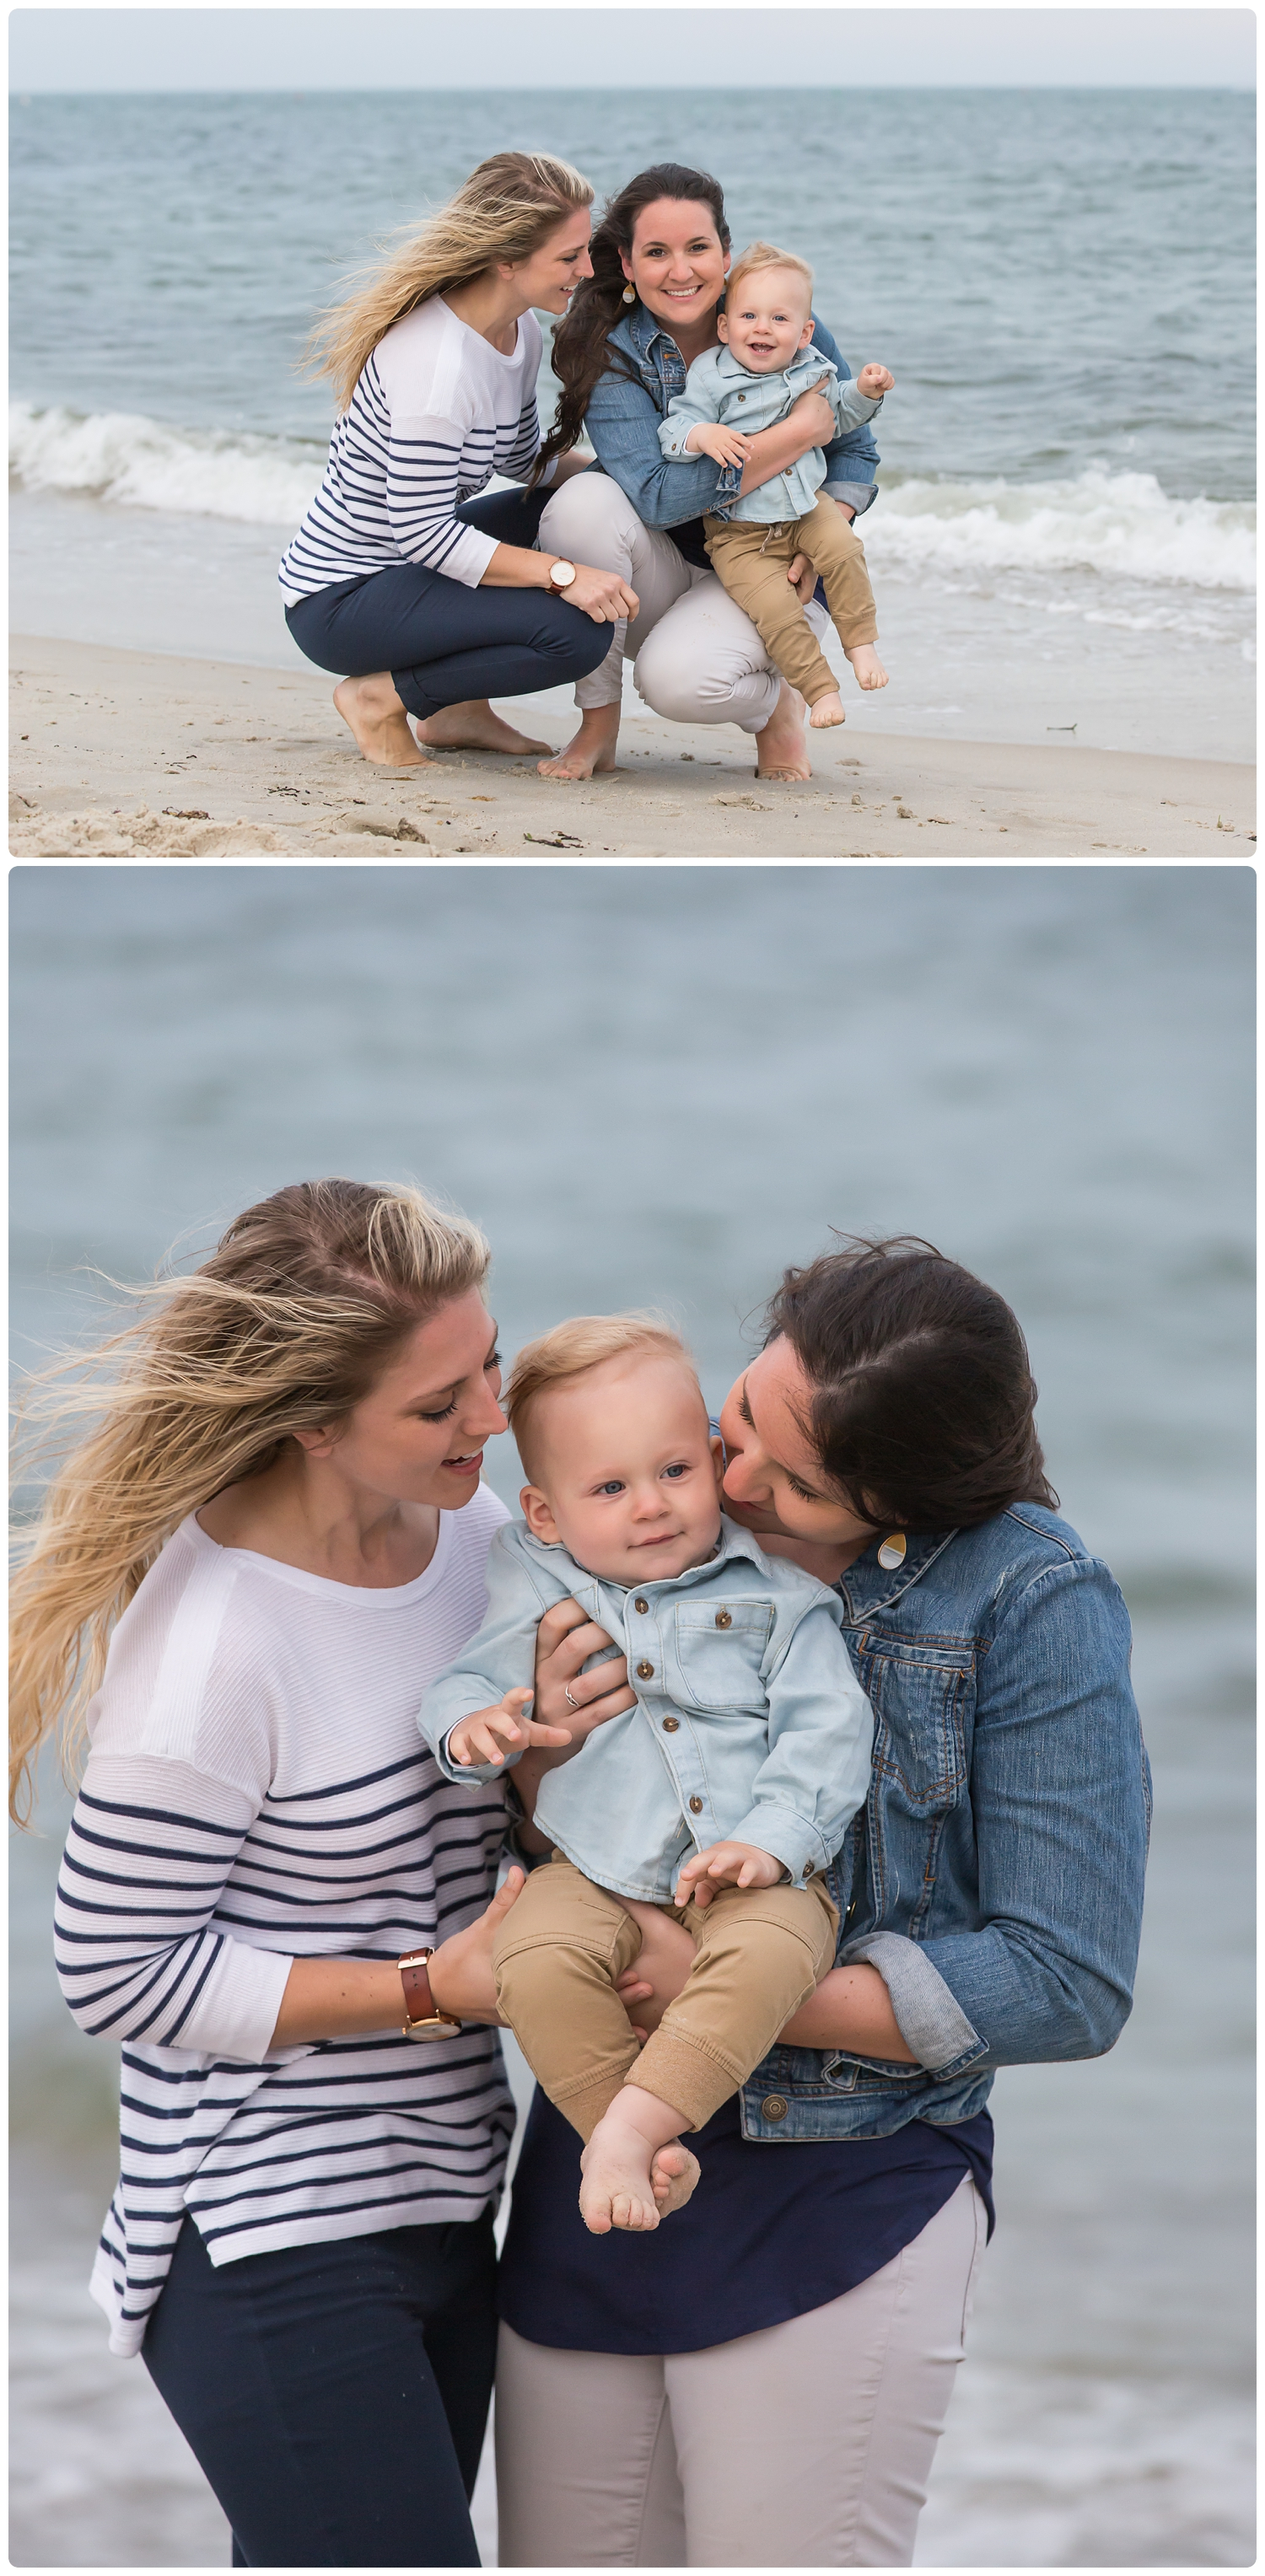 cape-cod-beach-family-photo.jpg